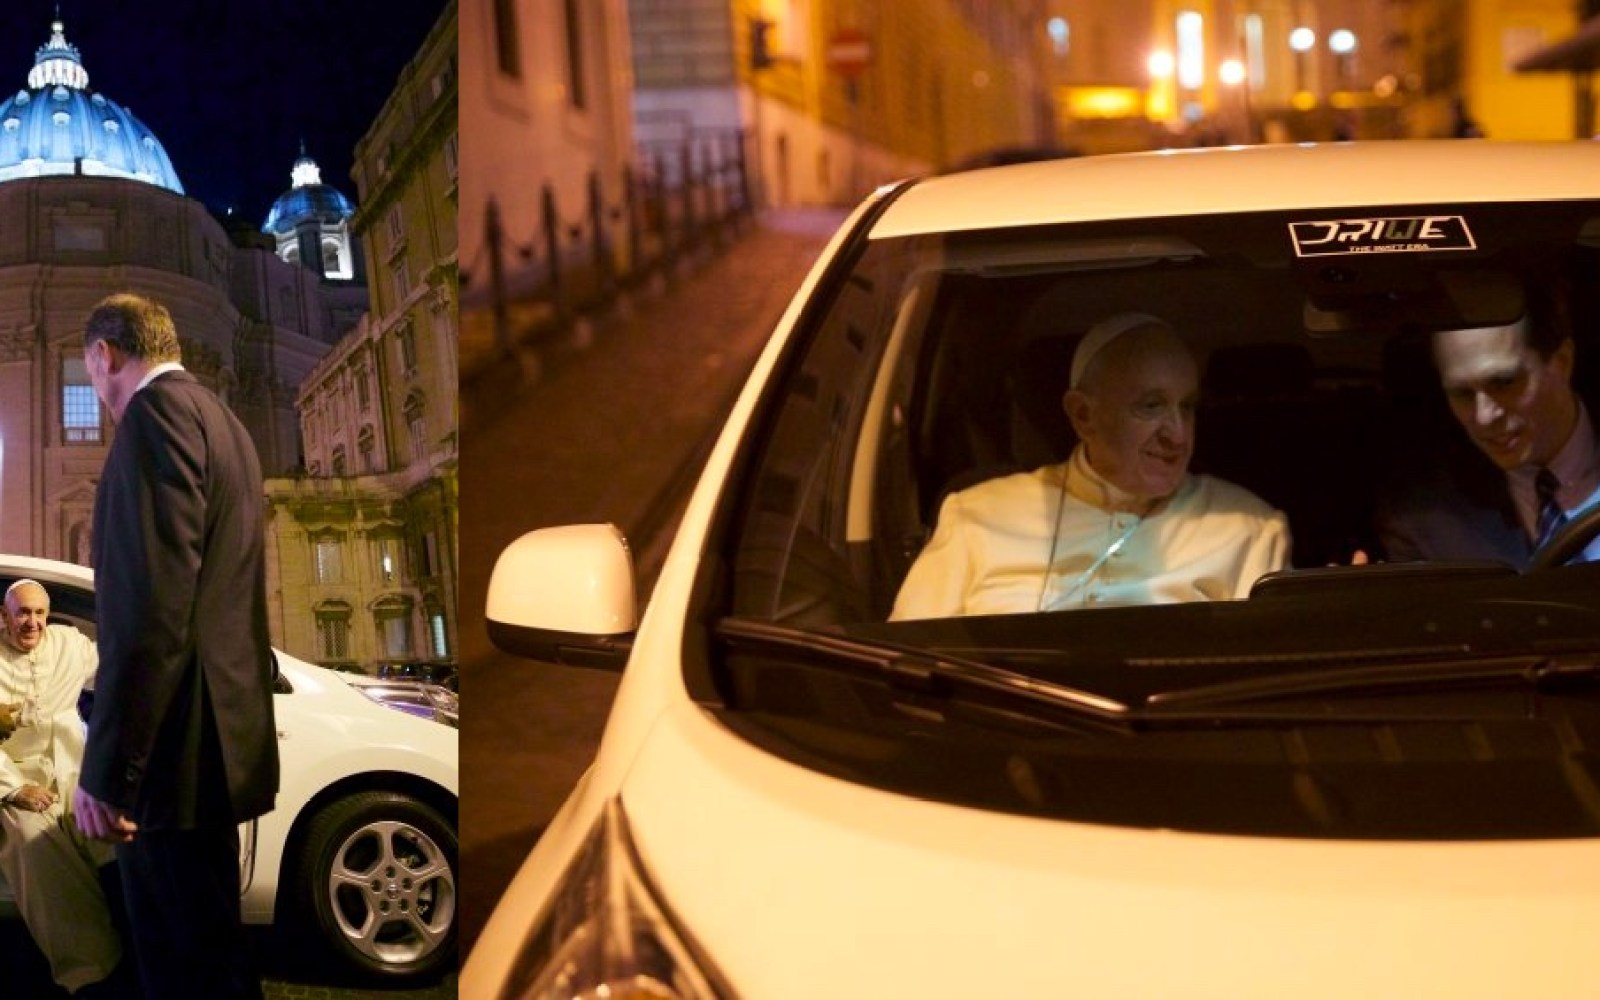 Pope Francis was offered a Tesla Model S or a Nissan LEAF, he chose the LEAF